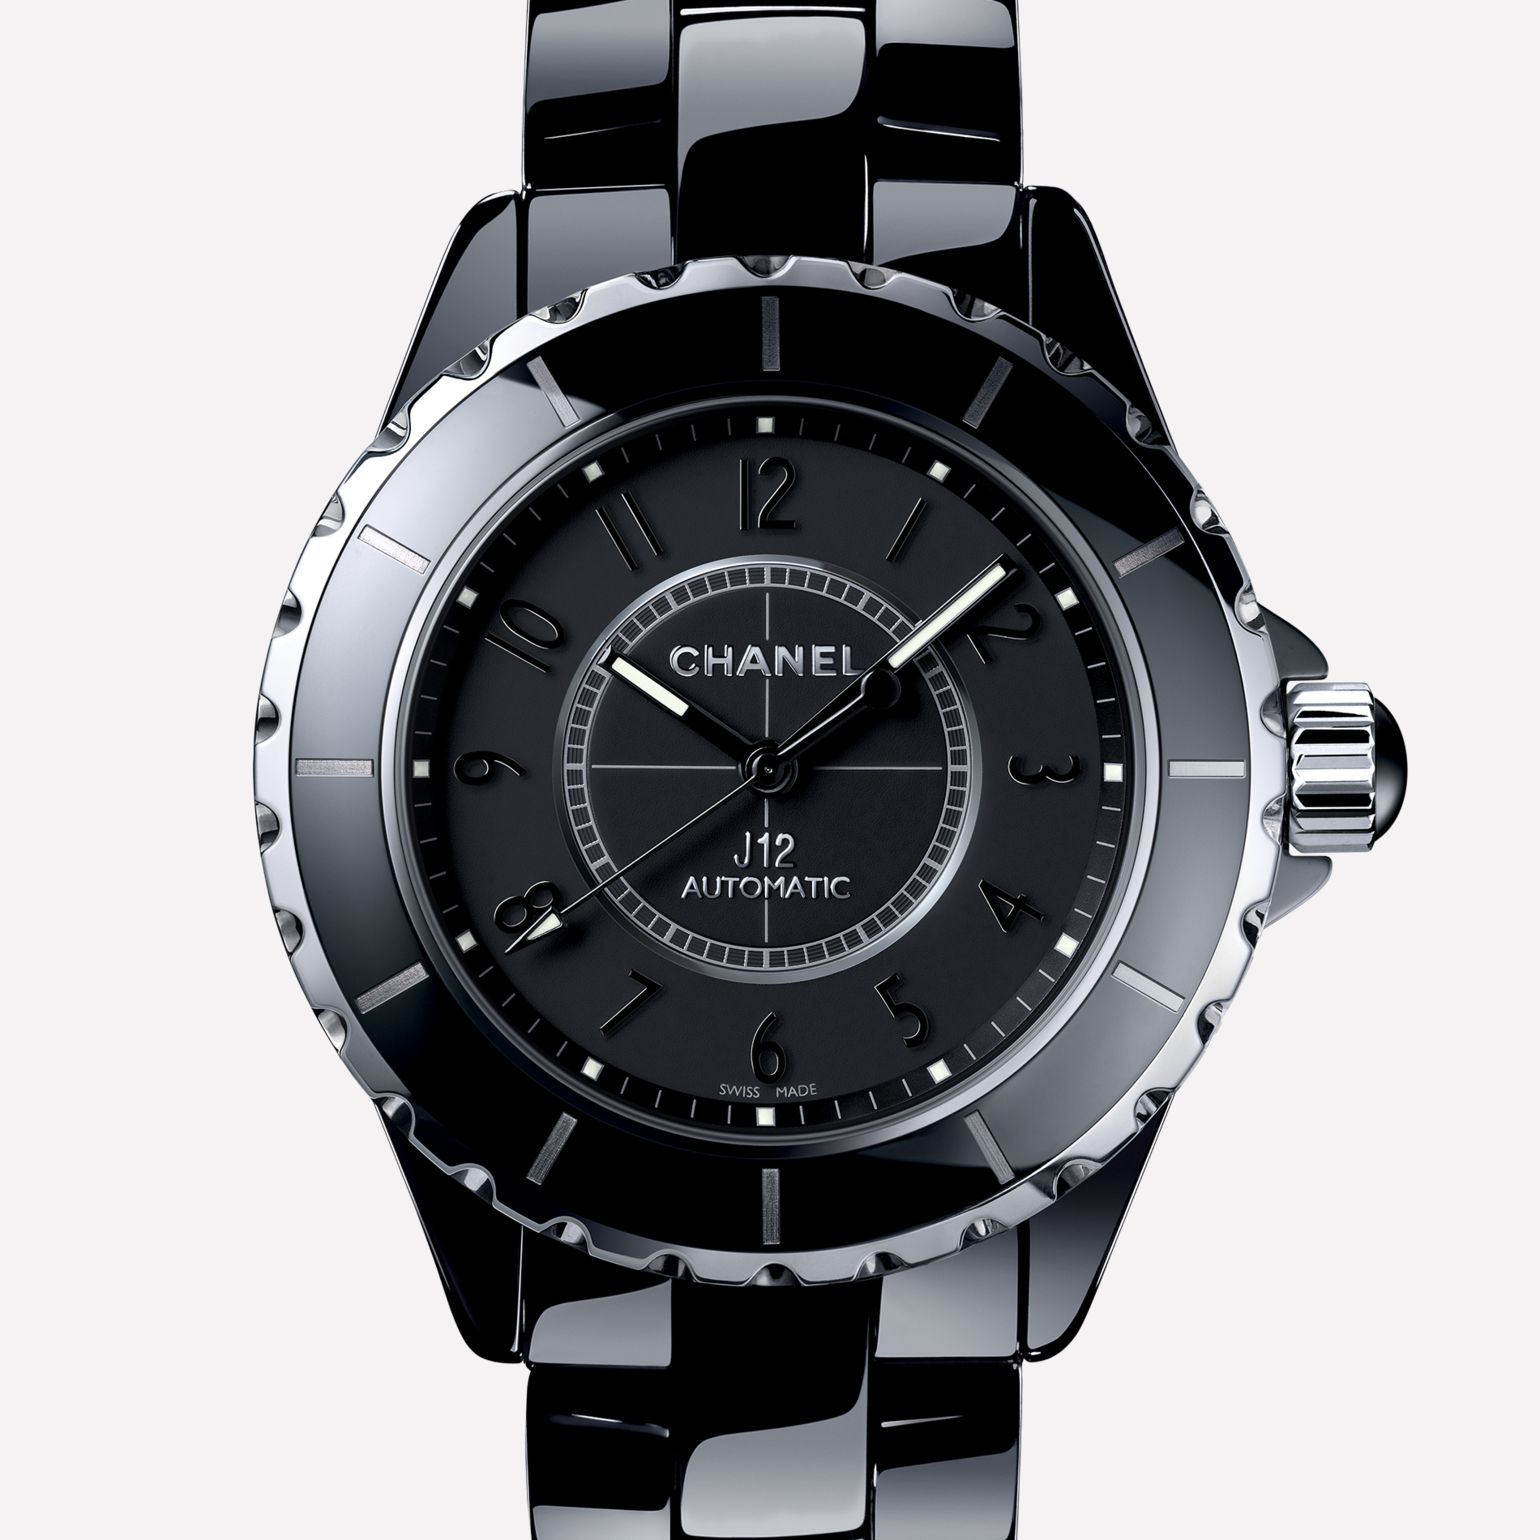 J12 Intense Black Black ceramic and steel, black dial and numerals